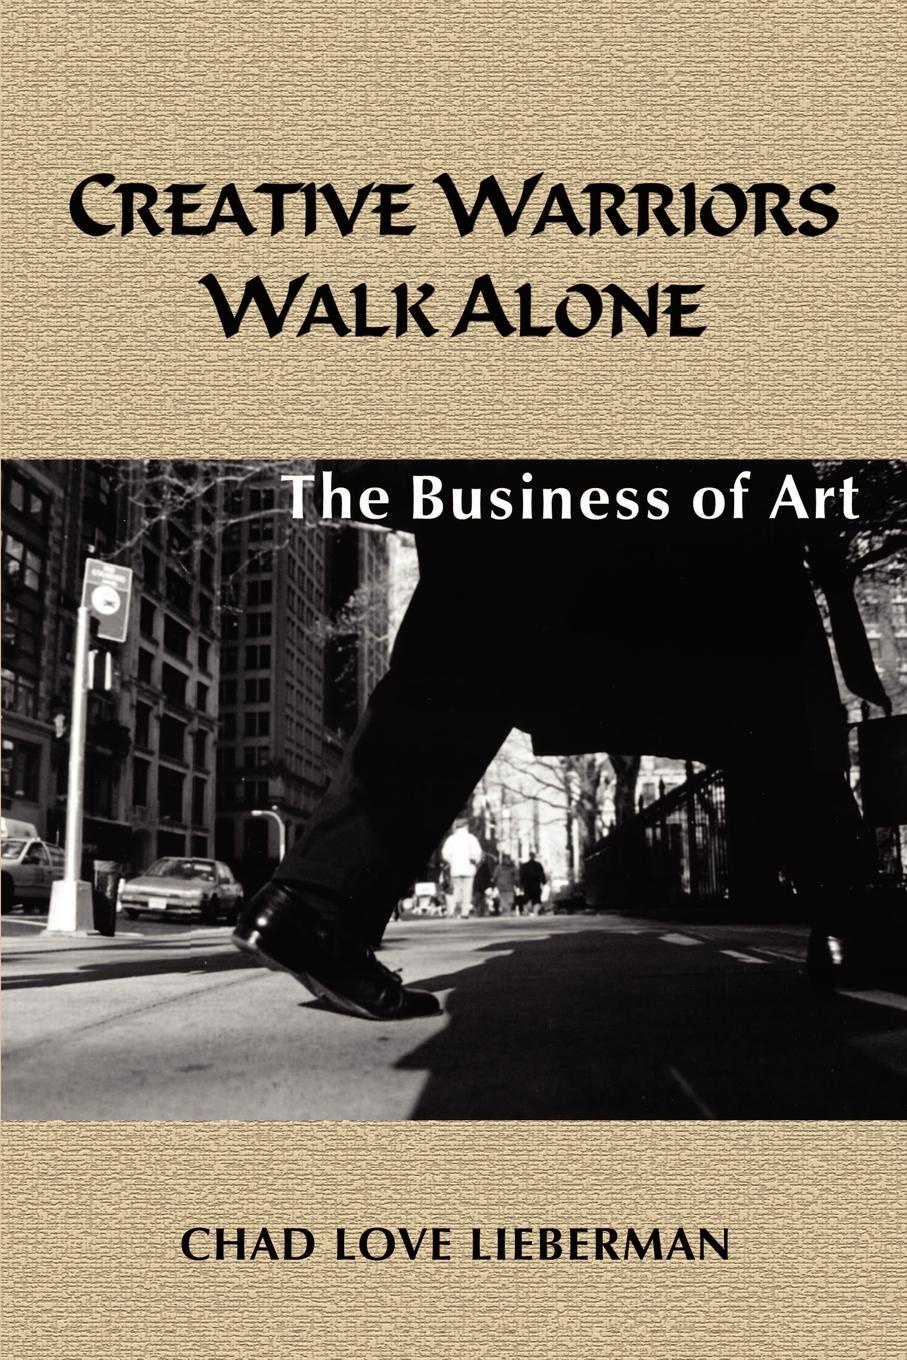 цены Chad Love Lieberman Creative Warriors Walk Alone. The Business of Art